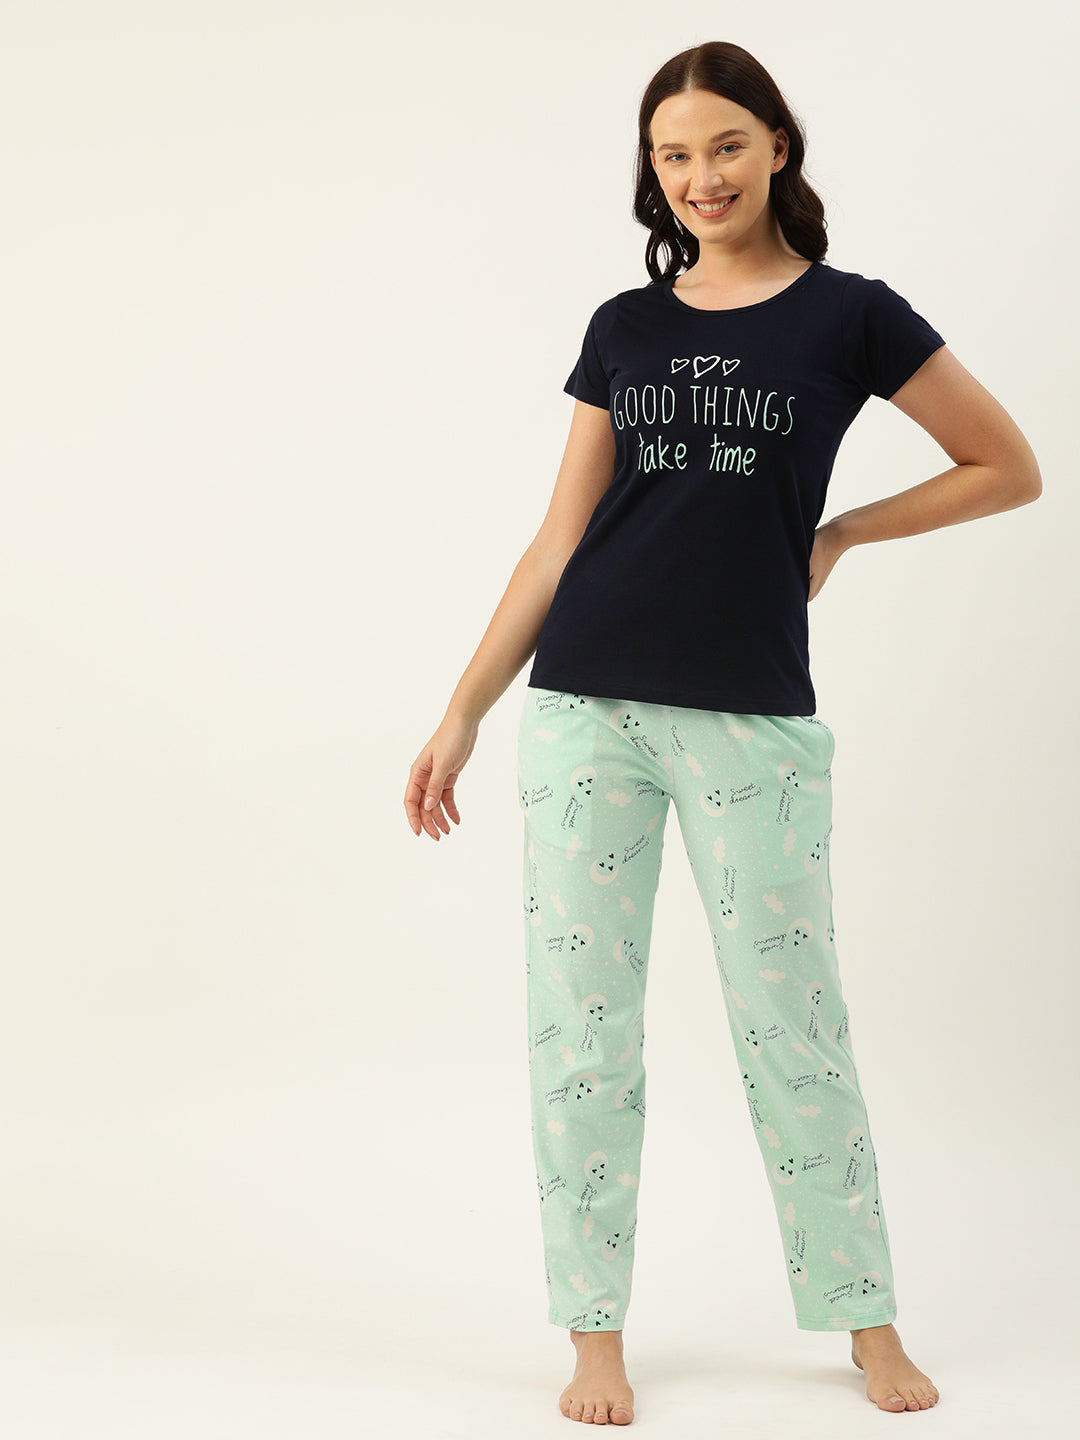 C995 Women T-shirt & Pyjamas